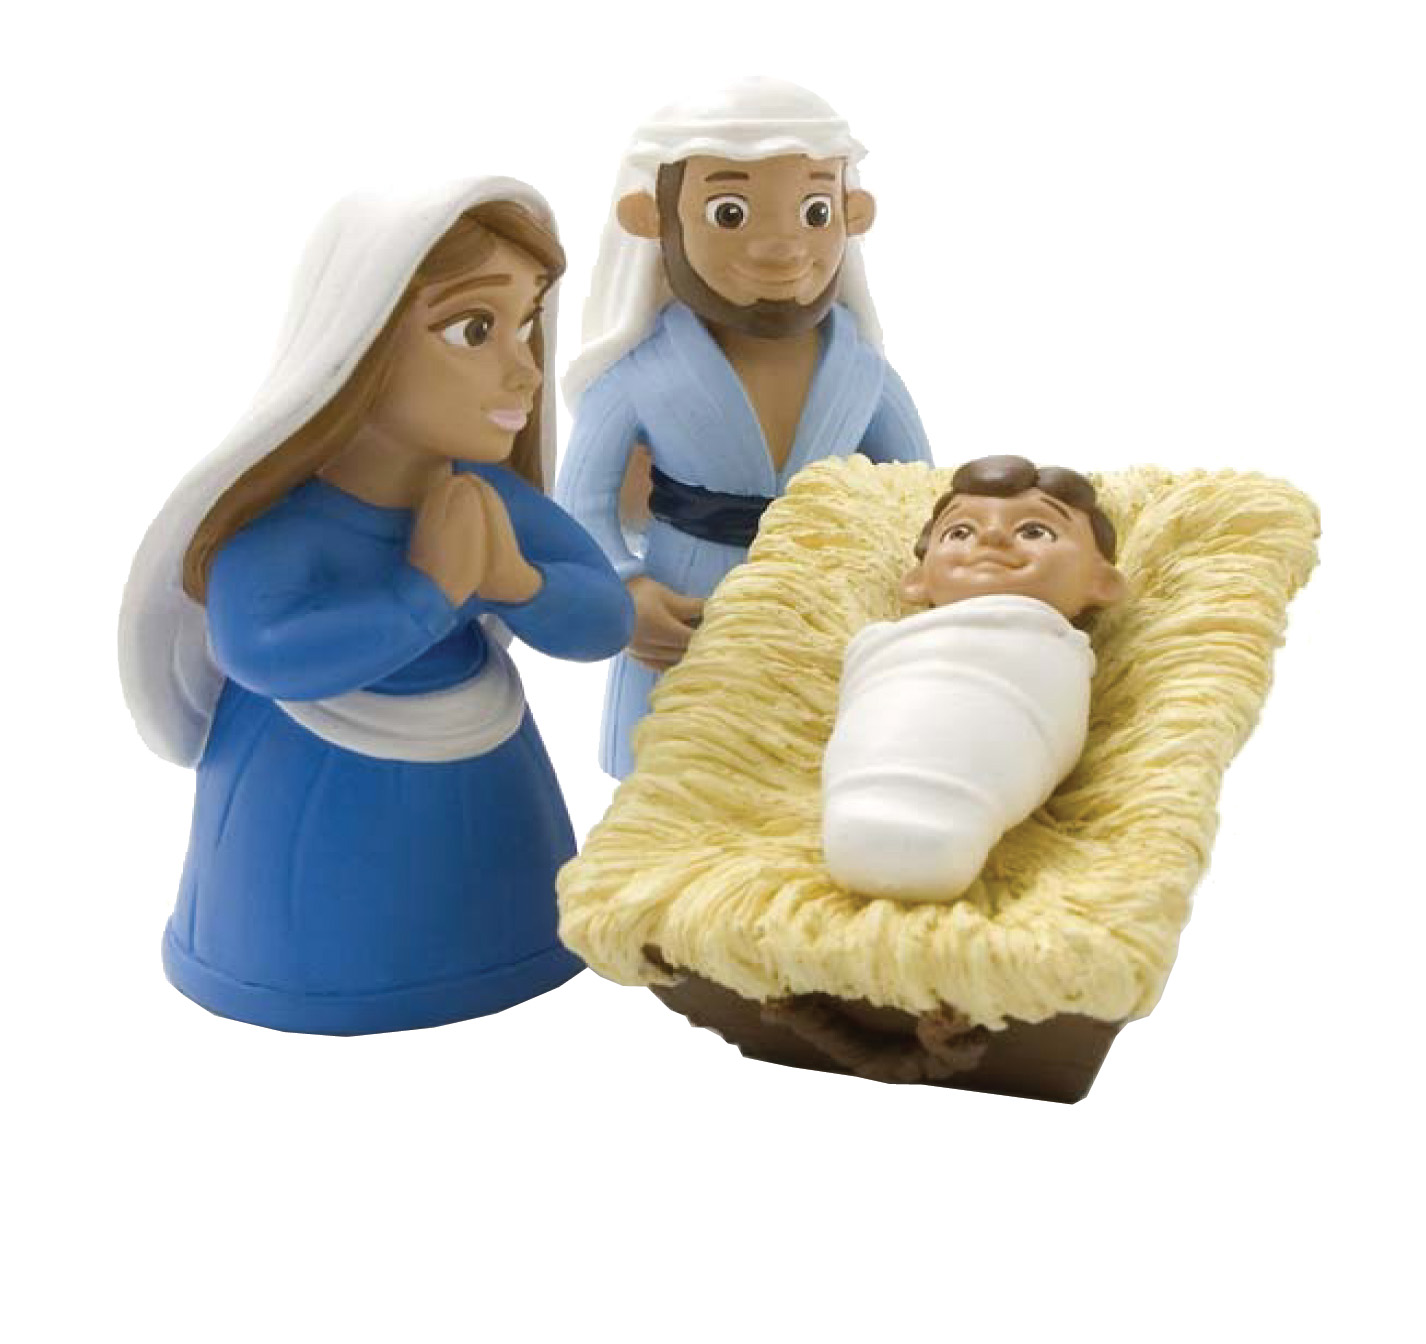 Tales of Glory: Birth of Baby Jesus